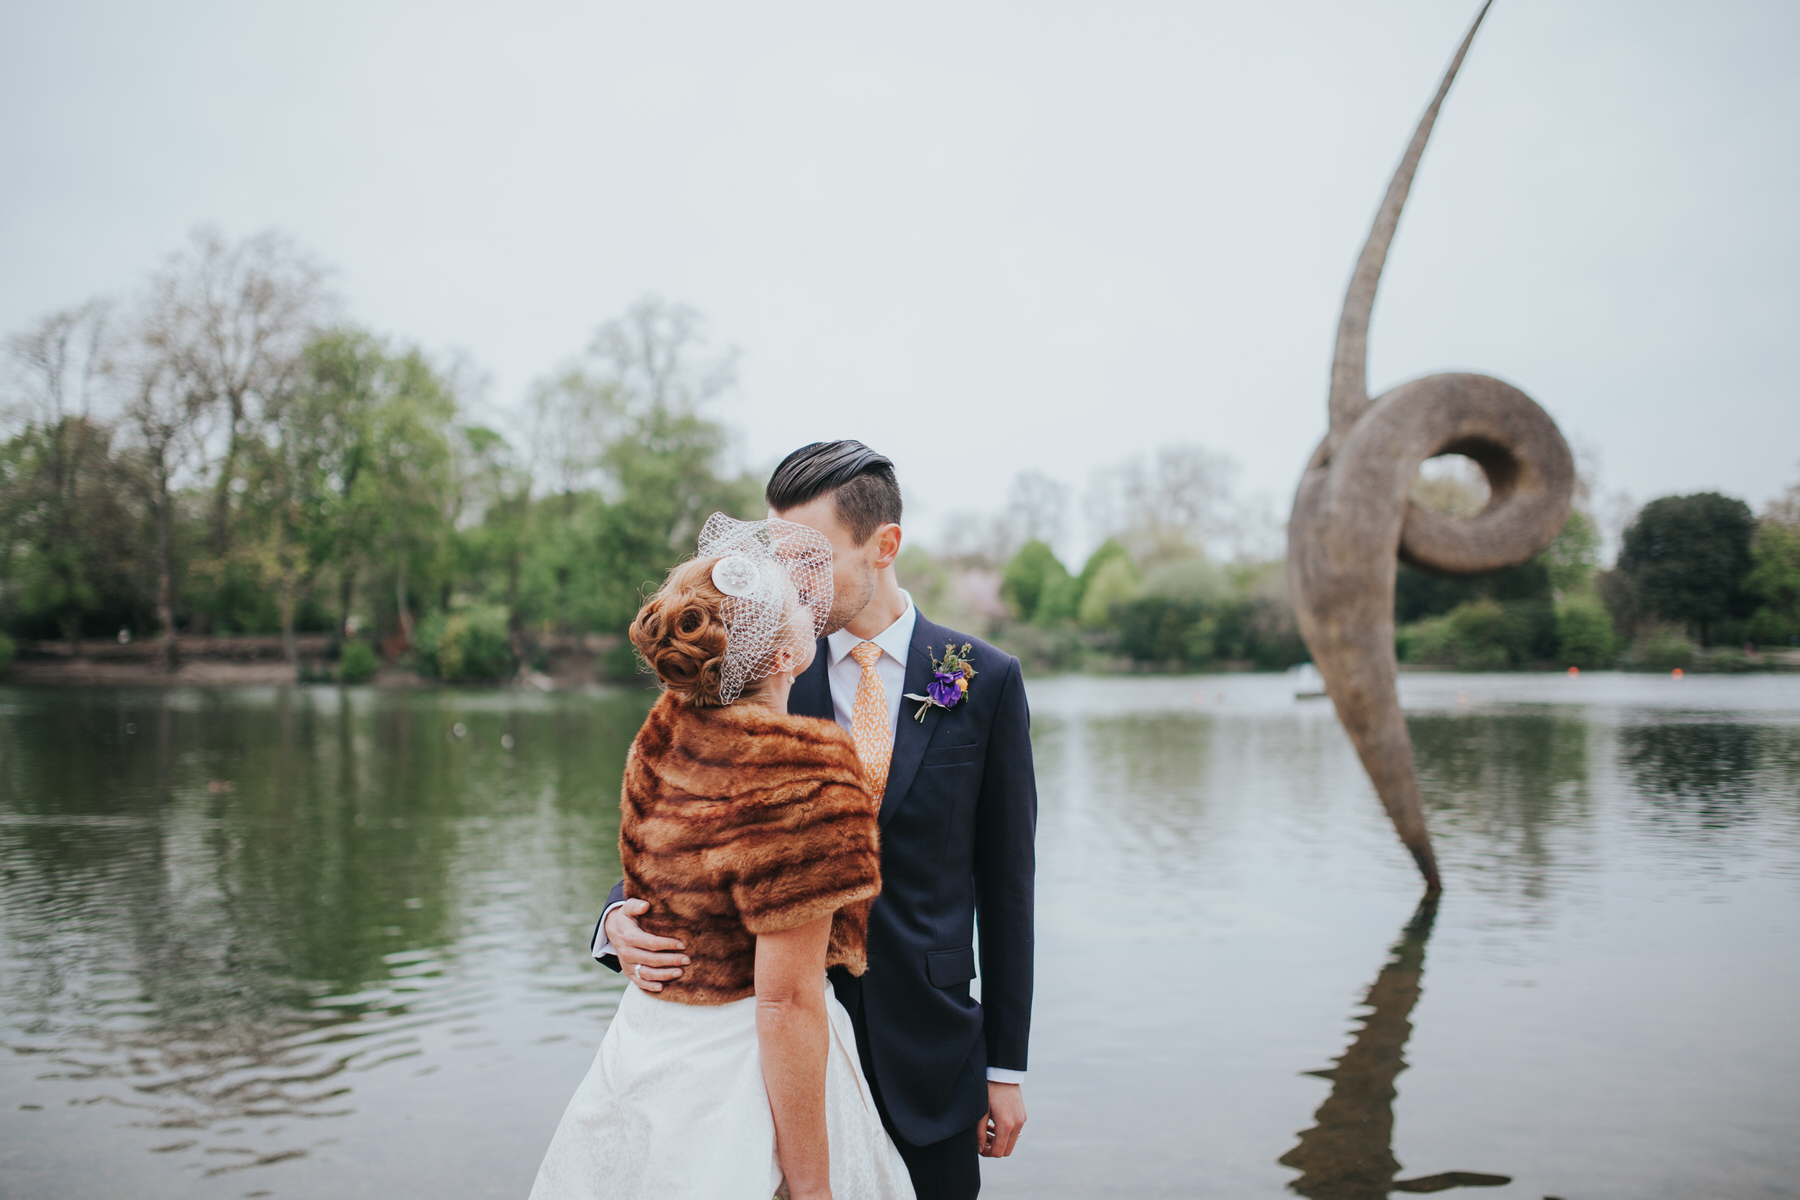 MS-Londesborough-Pub-wedding-Hackney-alternative-photographer-155-just-married-quirky-bride-groom-kissing-lake-Victoria-Park.jpg